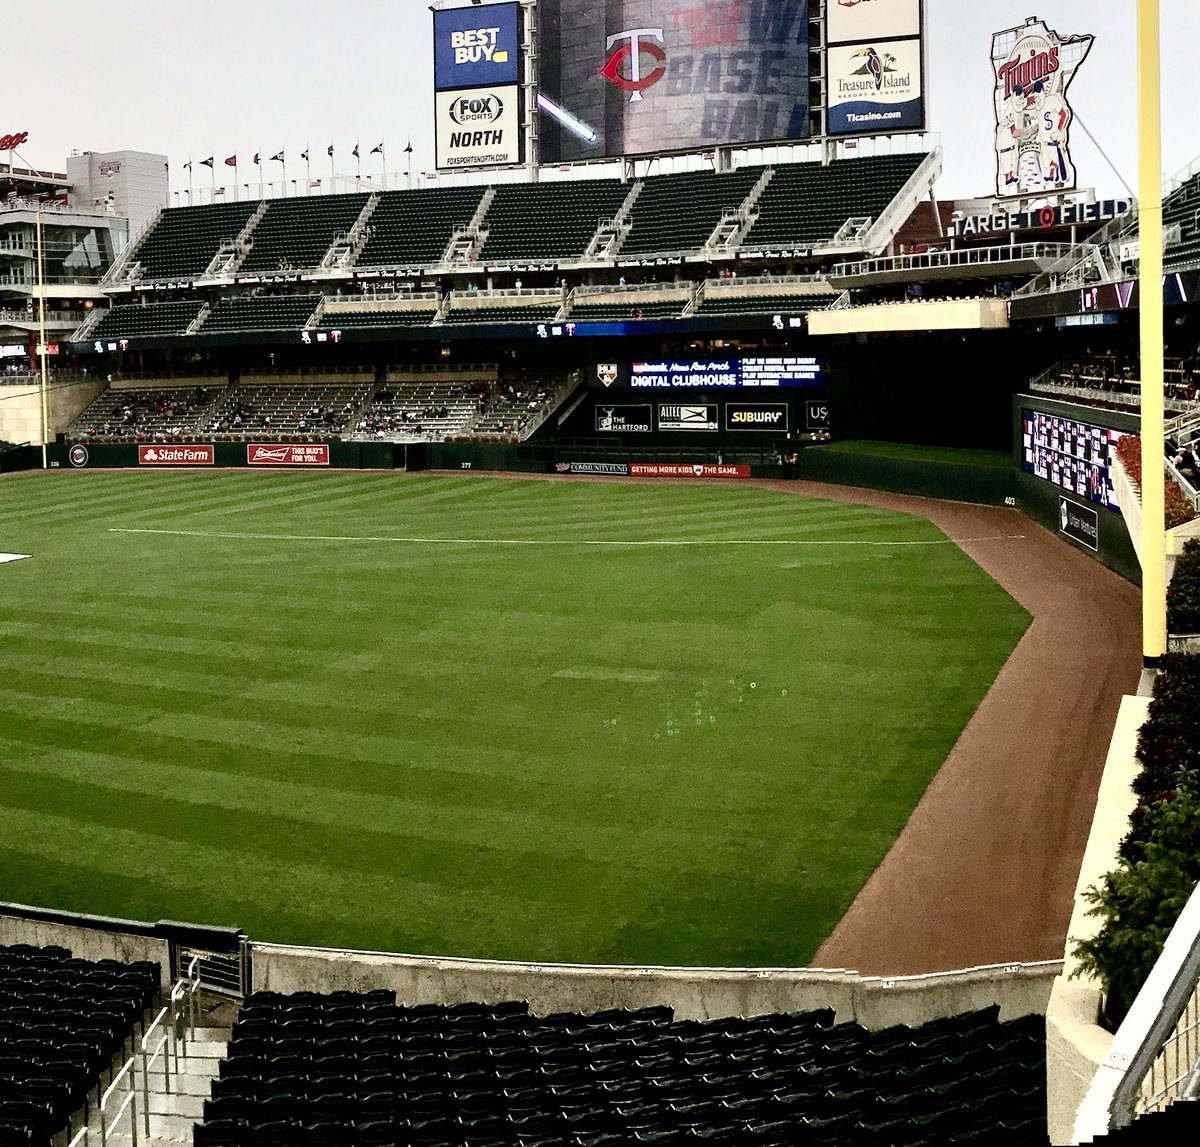 Photo of the outfield at Target Field, home of the Minnesota Twins.